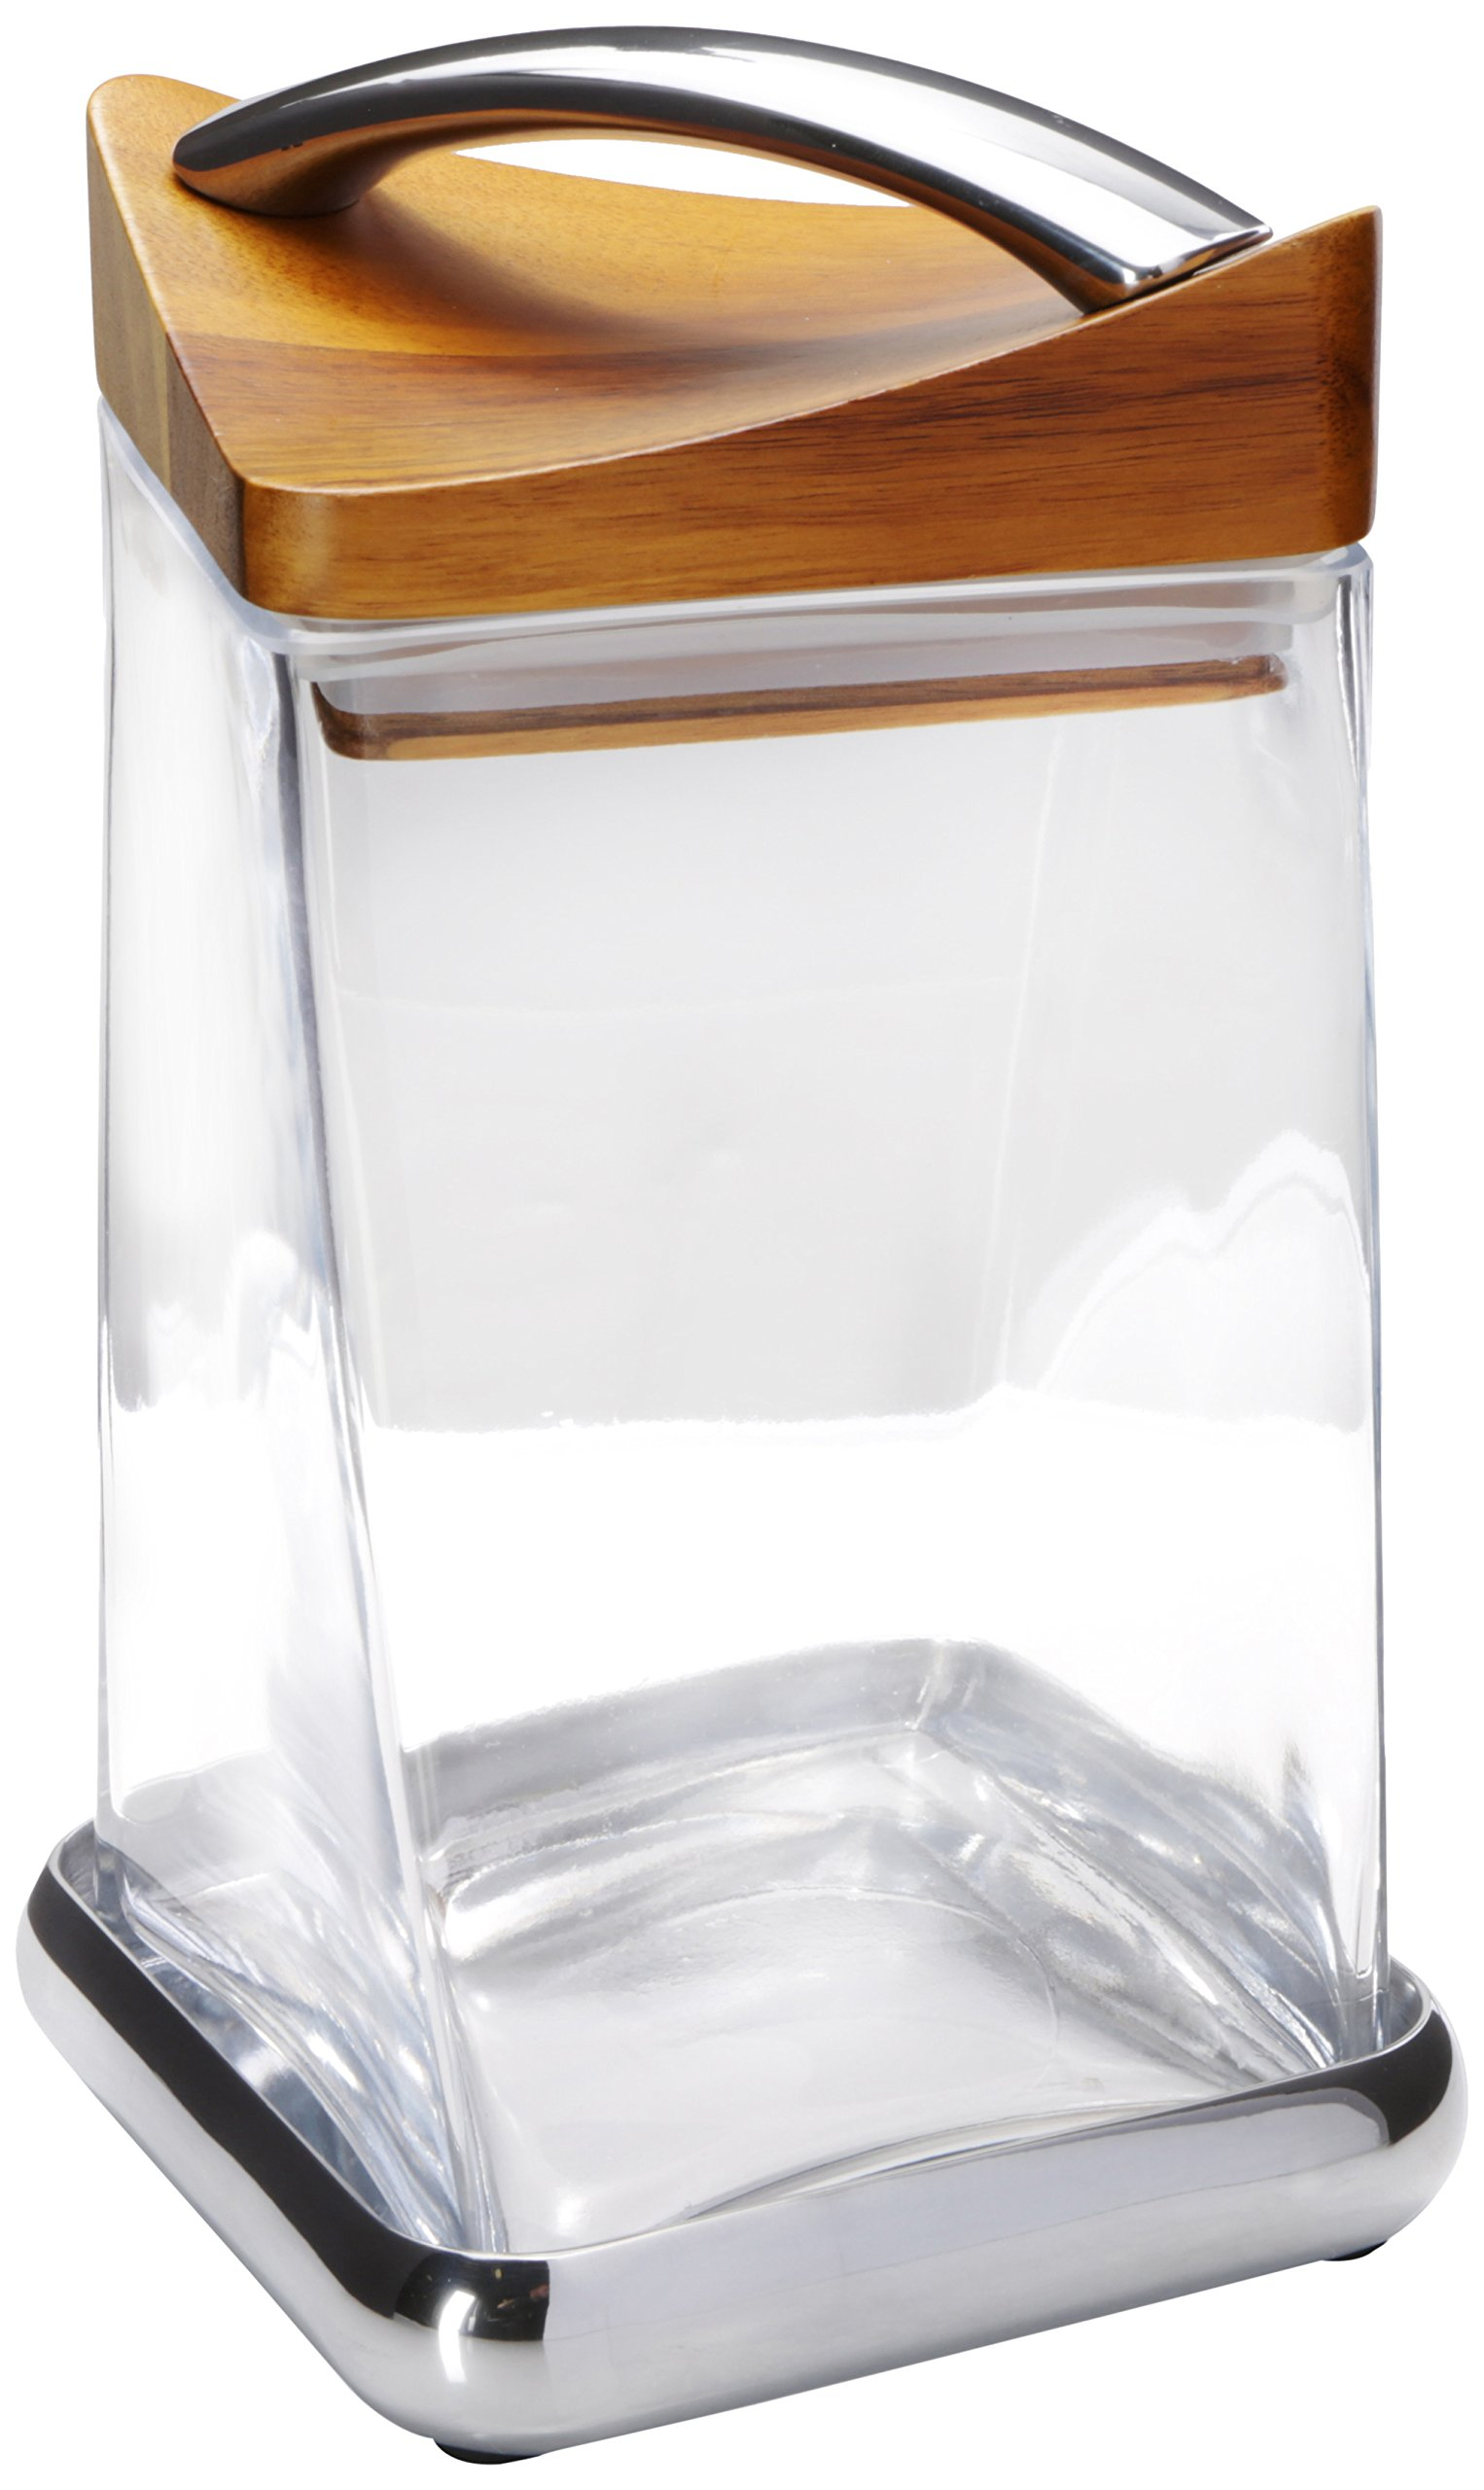 Nambe Twist Cannister, 8-Inch, Wood with Metal Alloy and Glass